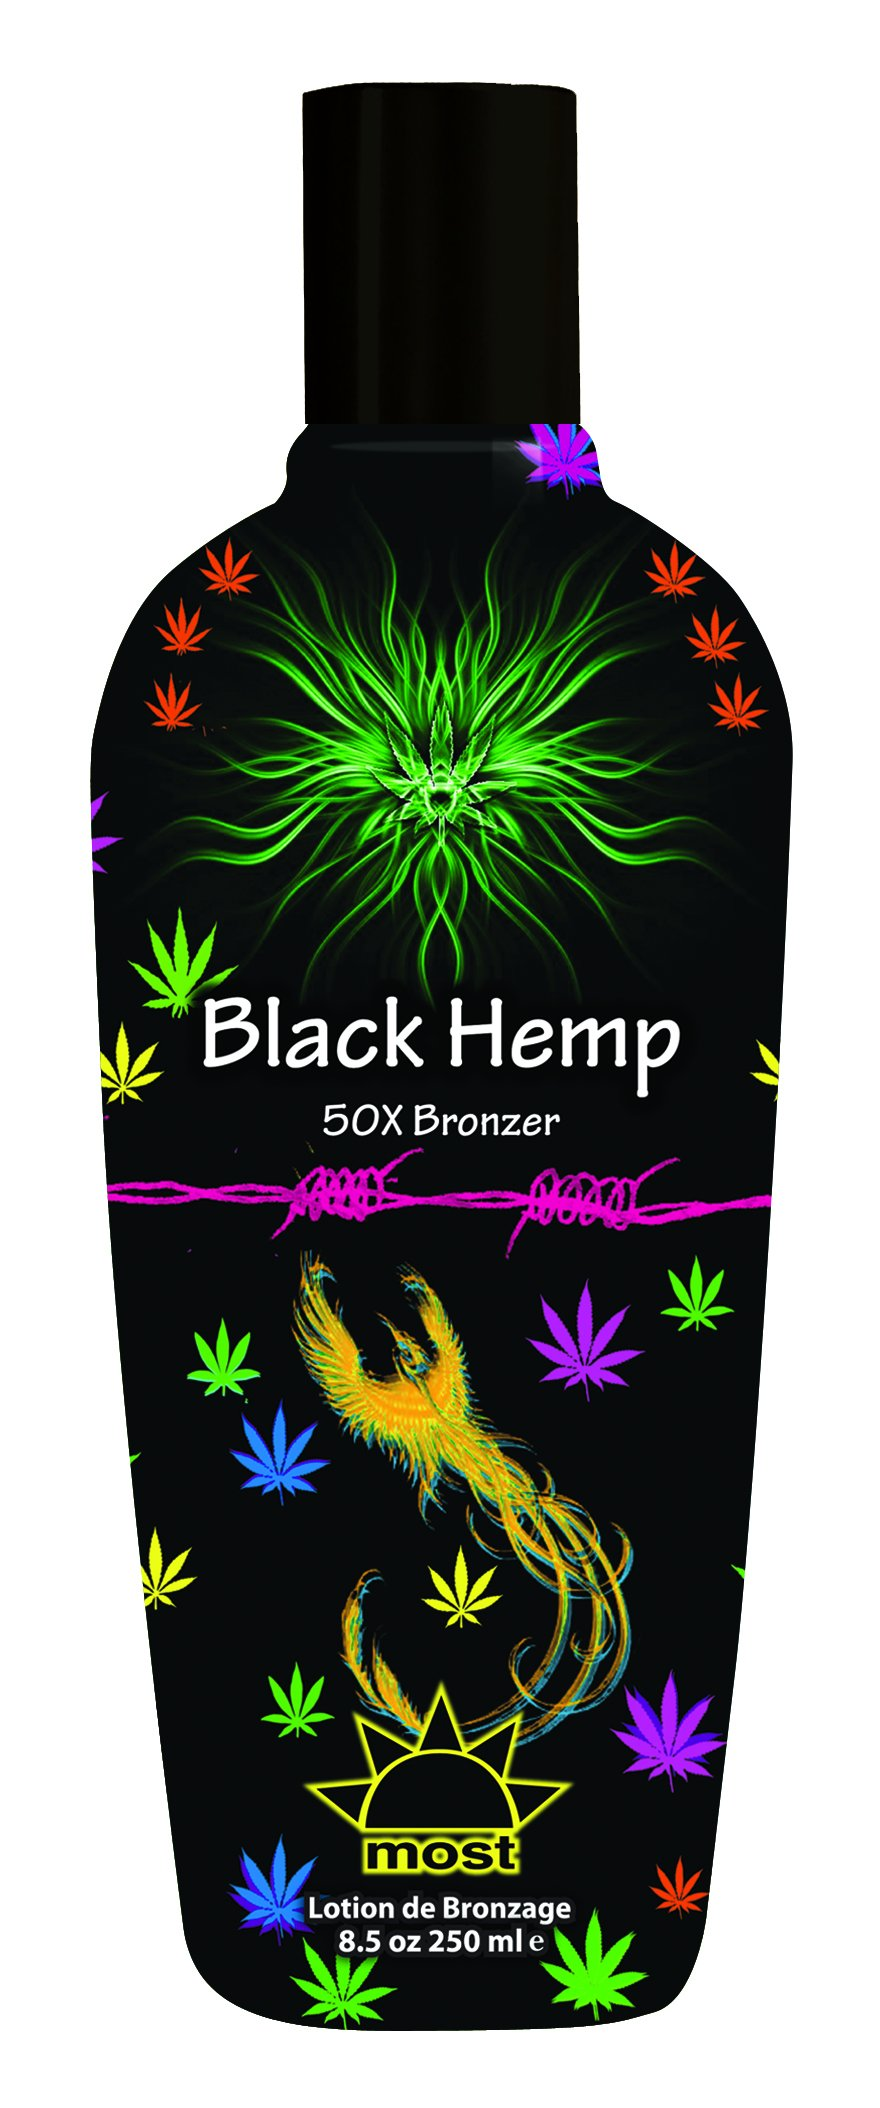 Black Hemp Bronzer Tanning Lotion